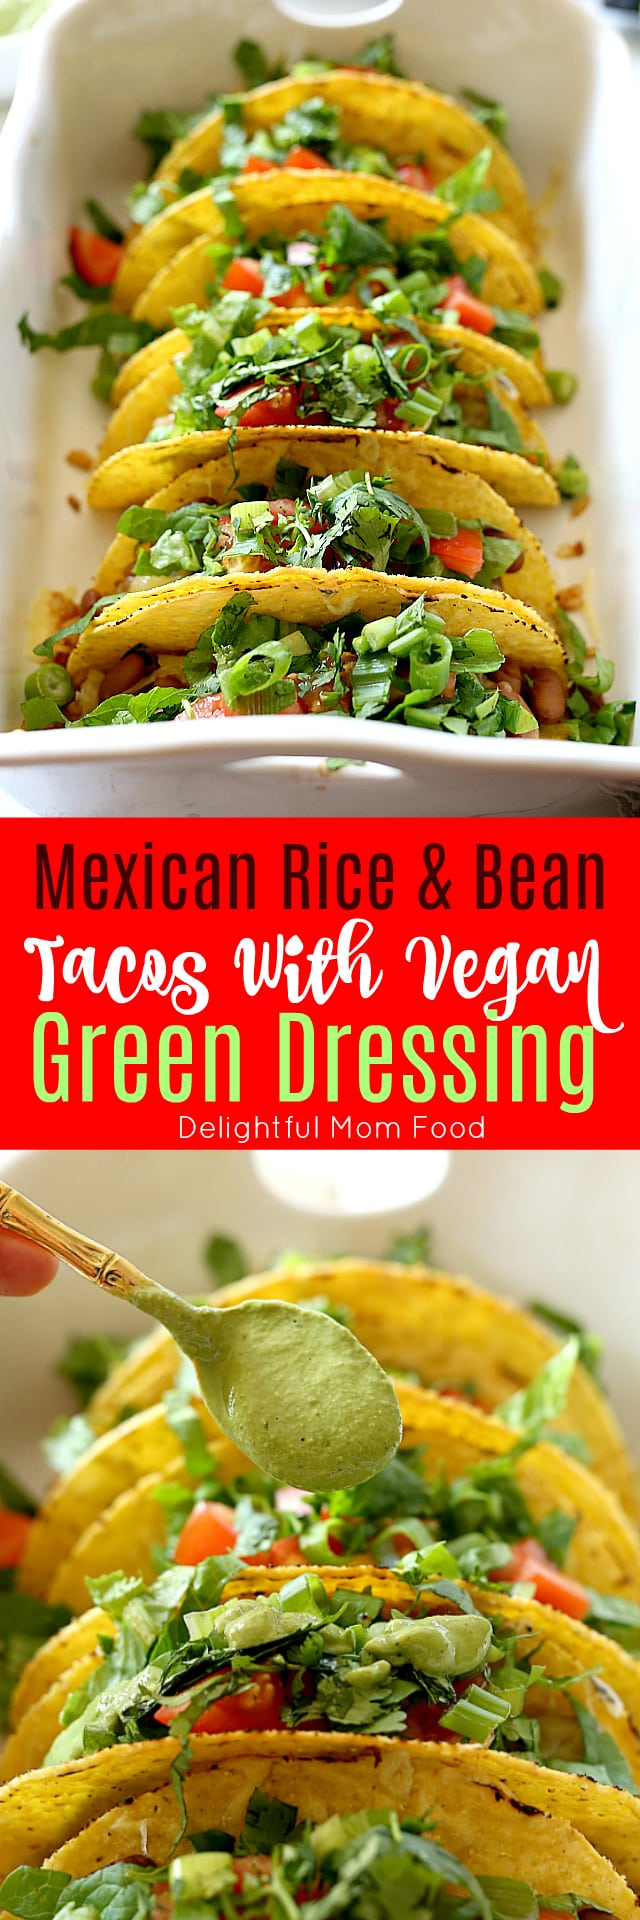 Mexican rice, beans, cheese, lettuce, cilantro and tomatoes stuffed into warm taco shells and topped with a creamy green vegan sauce. Super easy and healthy recipe for hard shell tacos in under 30 minutes!